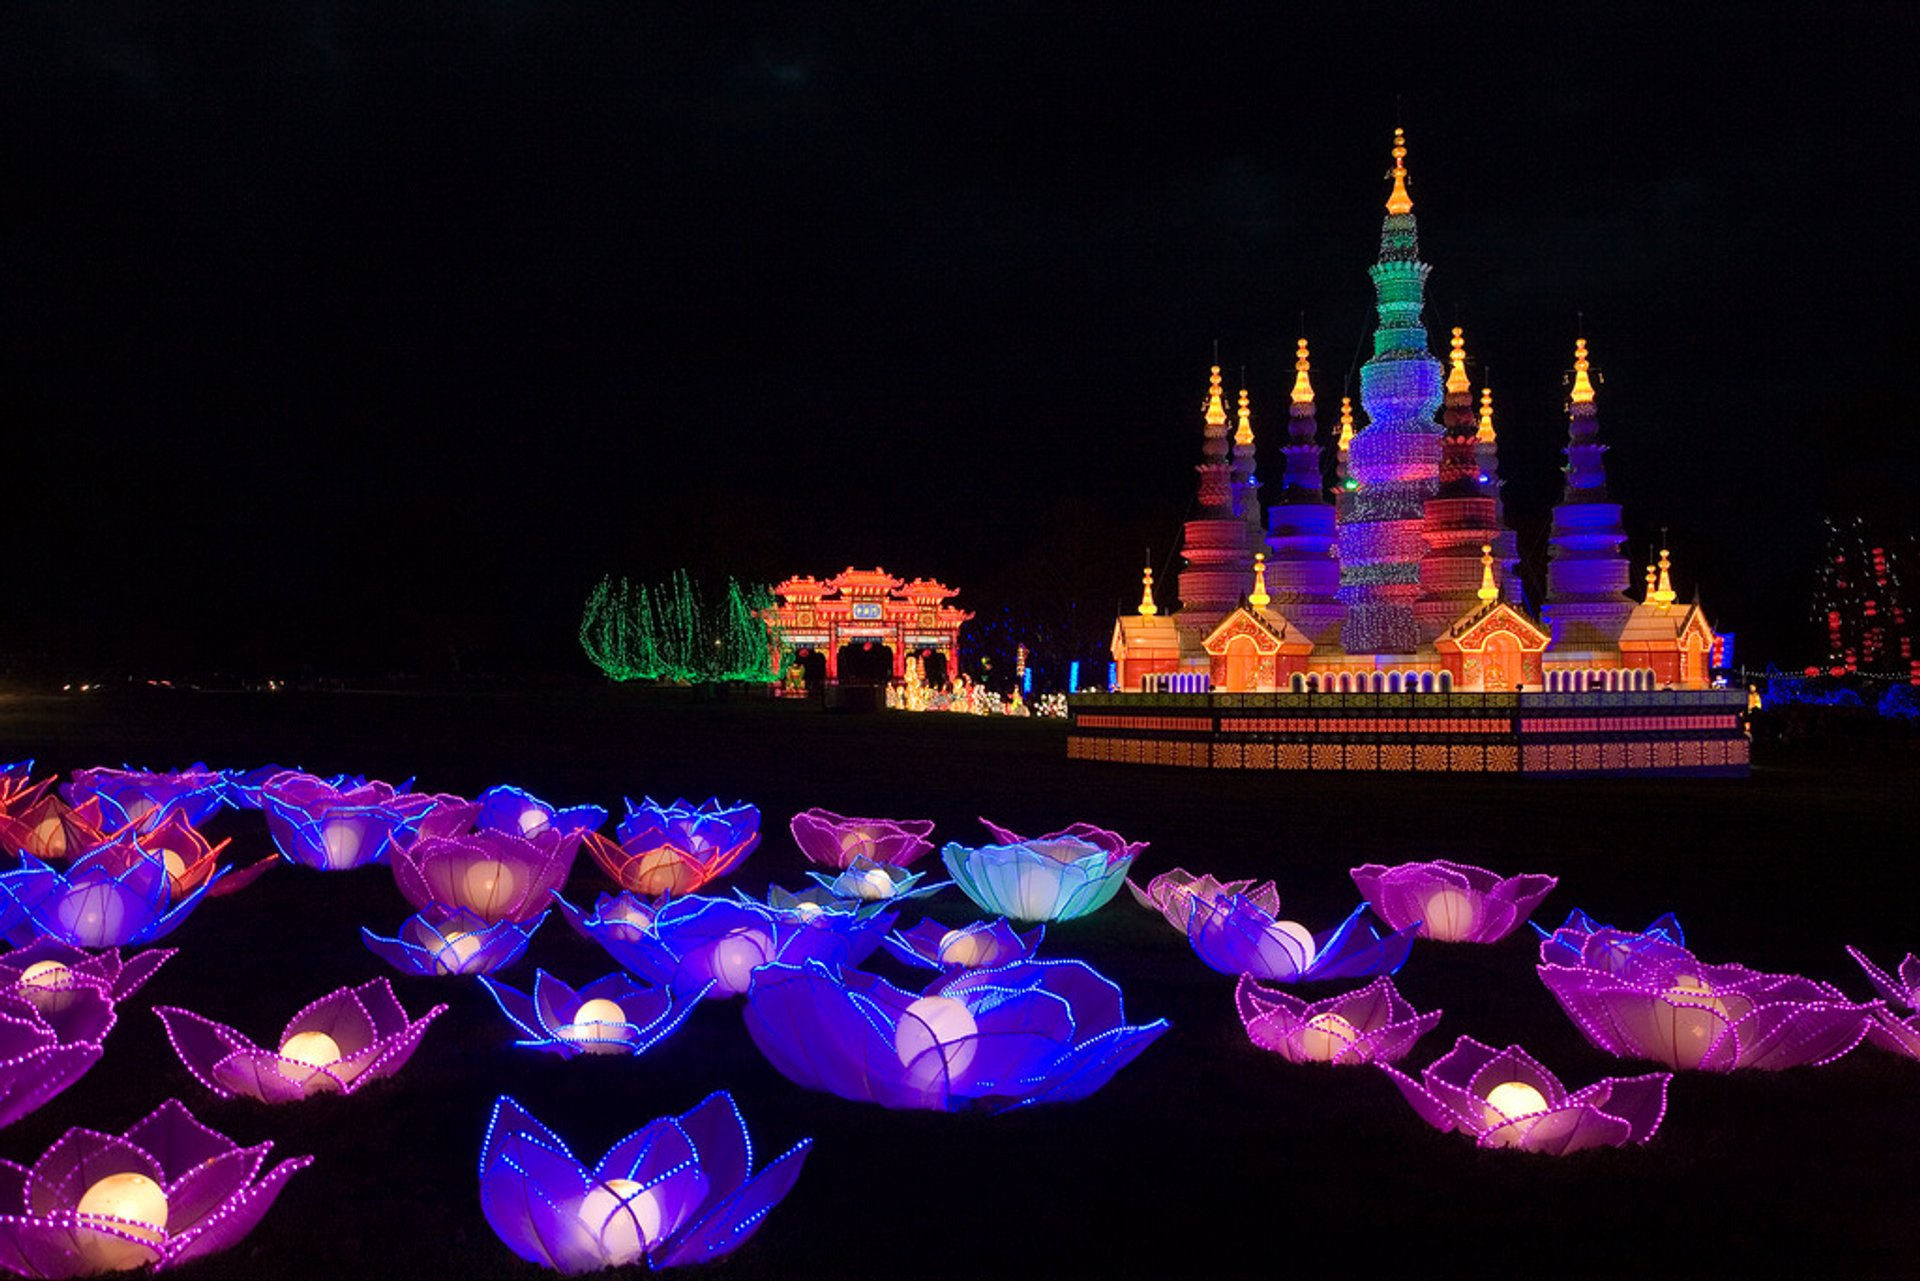 Festival of Light at Longleat in England 2020 - Best Time